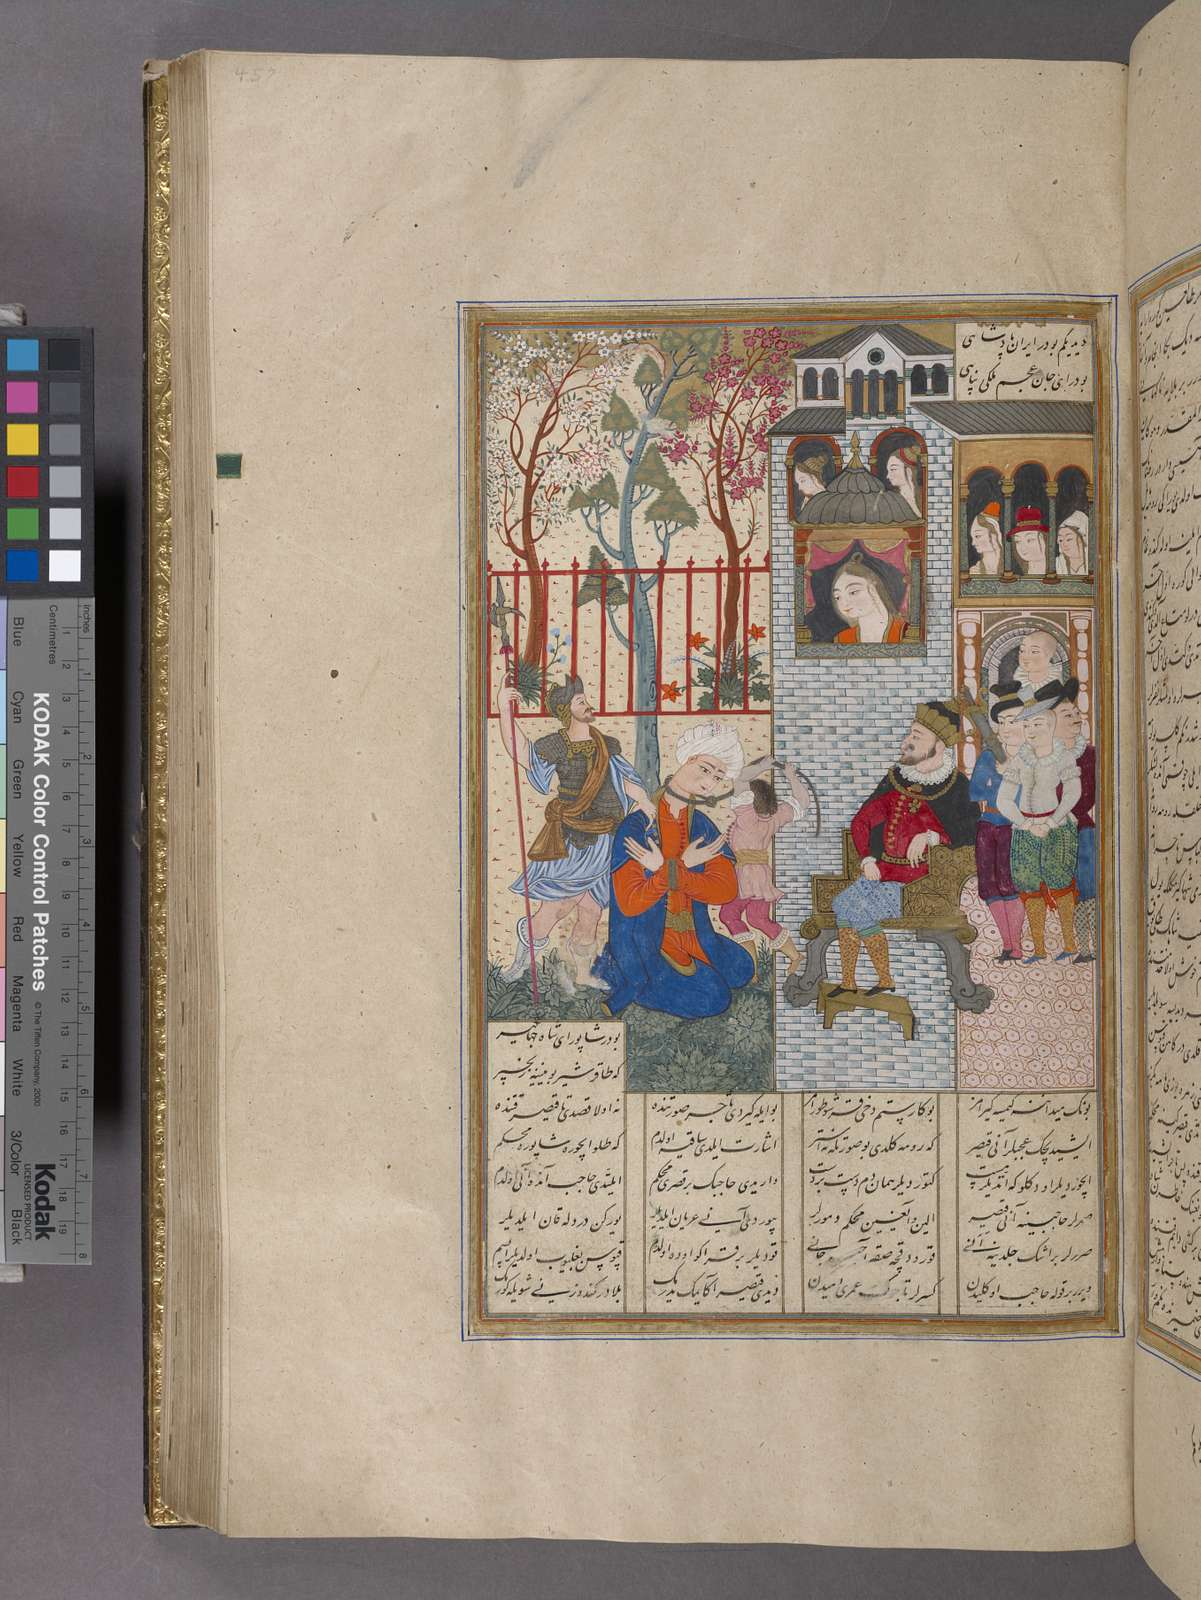 Shâh Shâpûr II, disguised as a merchant, travels to Rûm and arranged an audience with Qaysar (the Byzantine emperor).